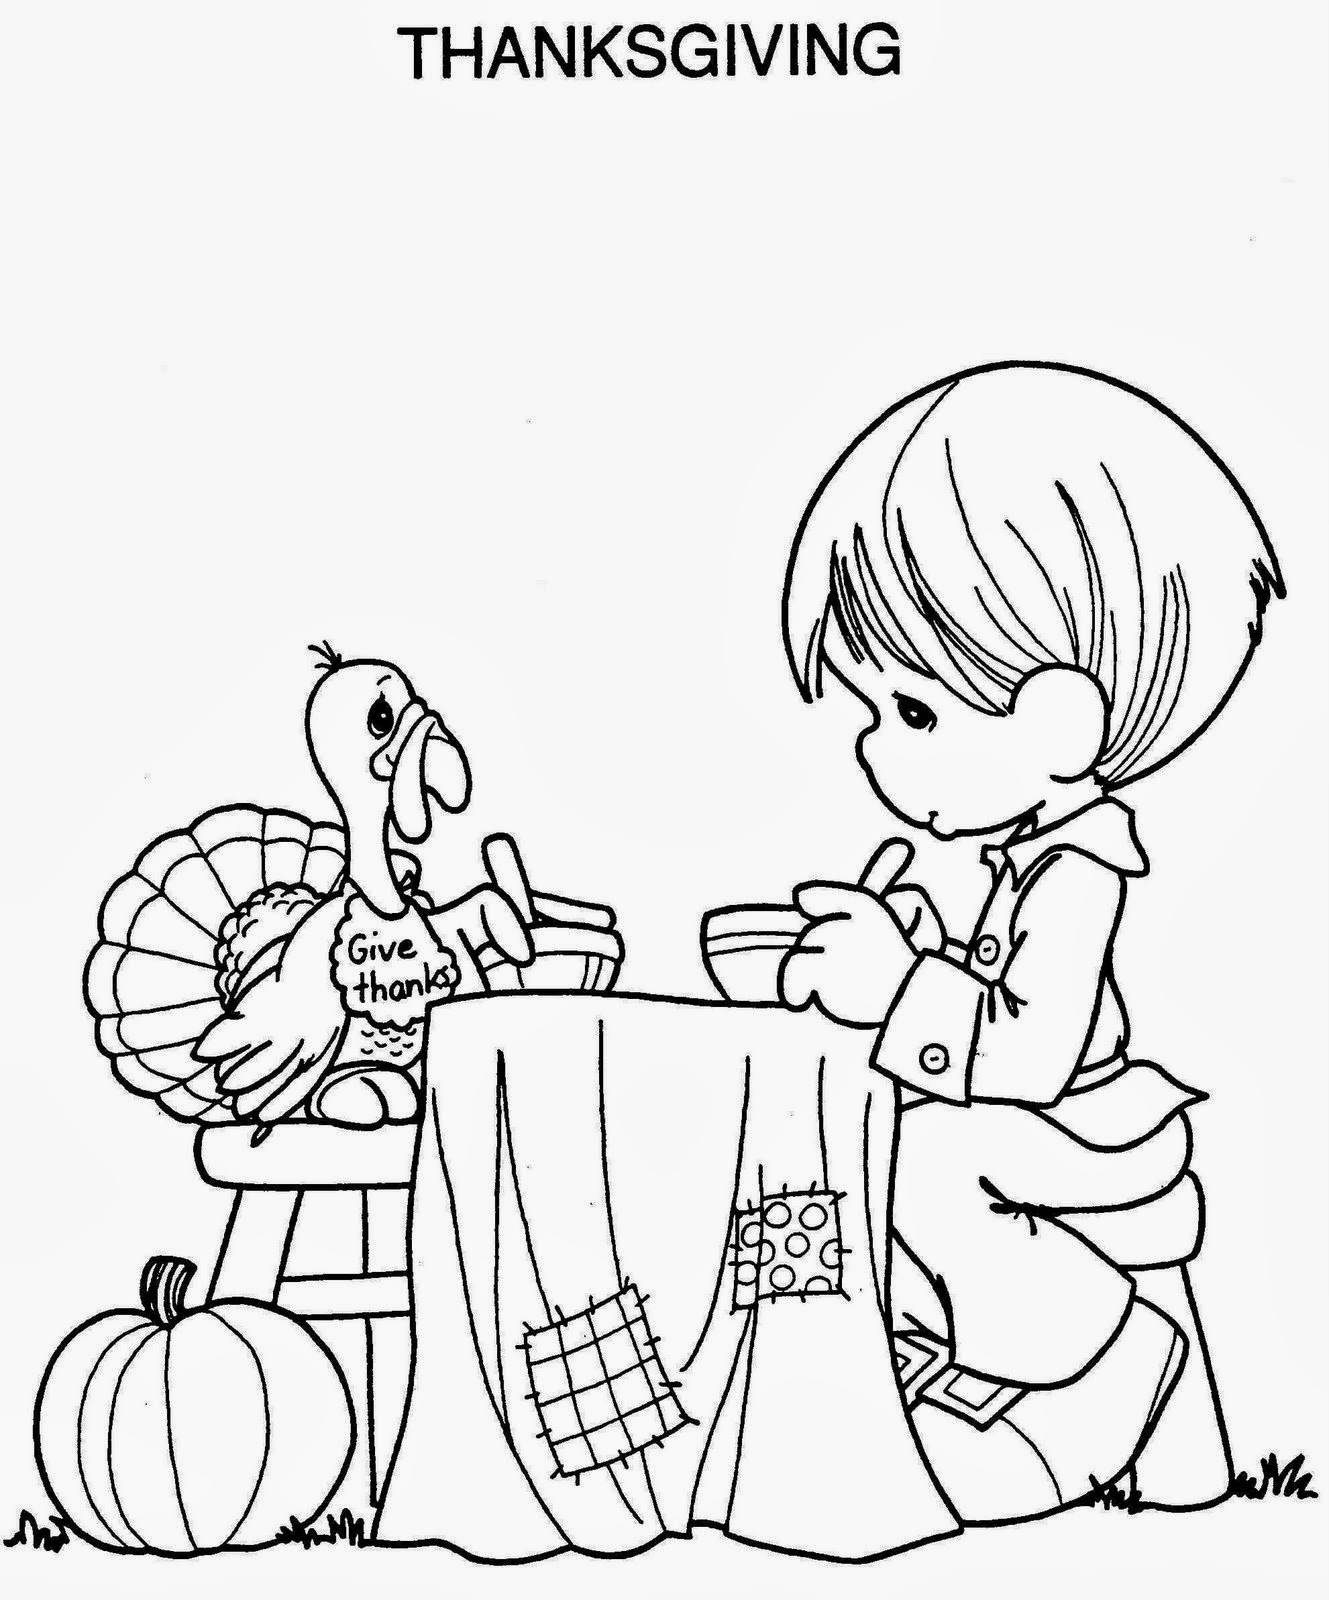 Thanksgiving day for coloring part 1 for Free thanksgiving color pages